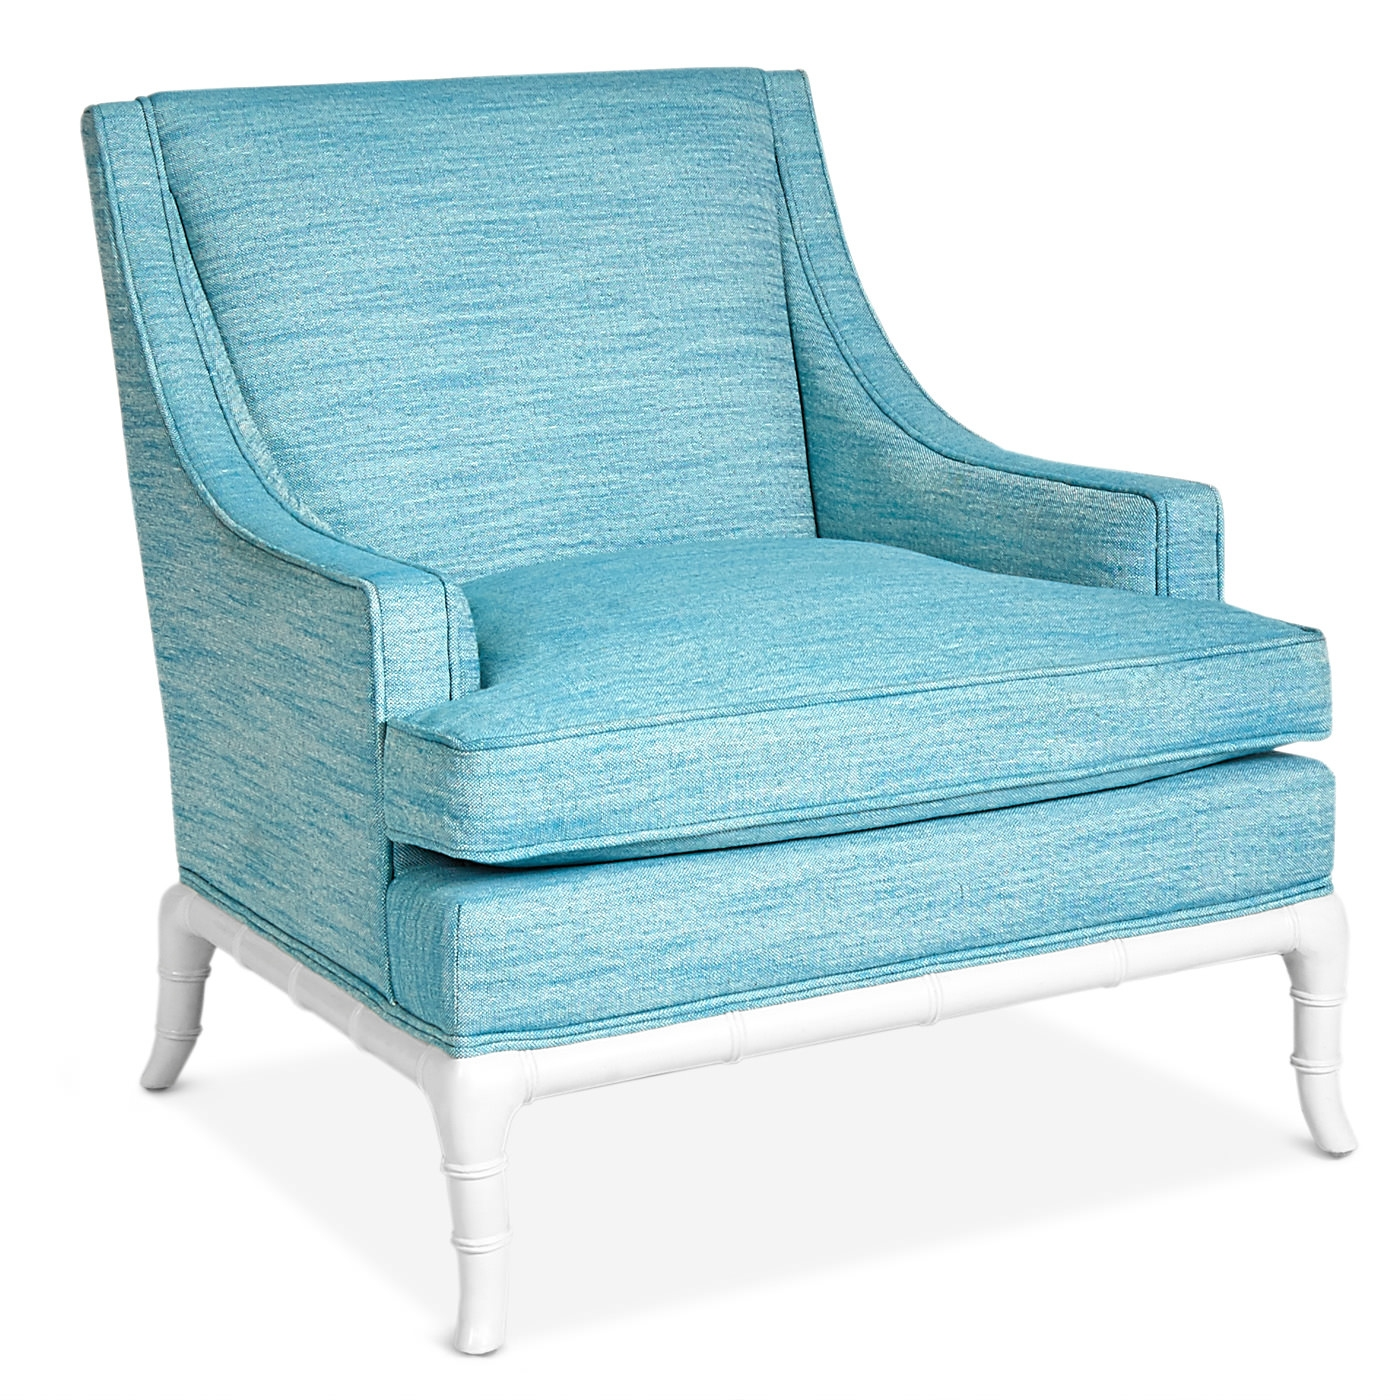 modern furniture chippendale chair lounge teal a jonathan adler